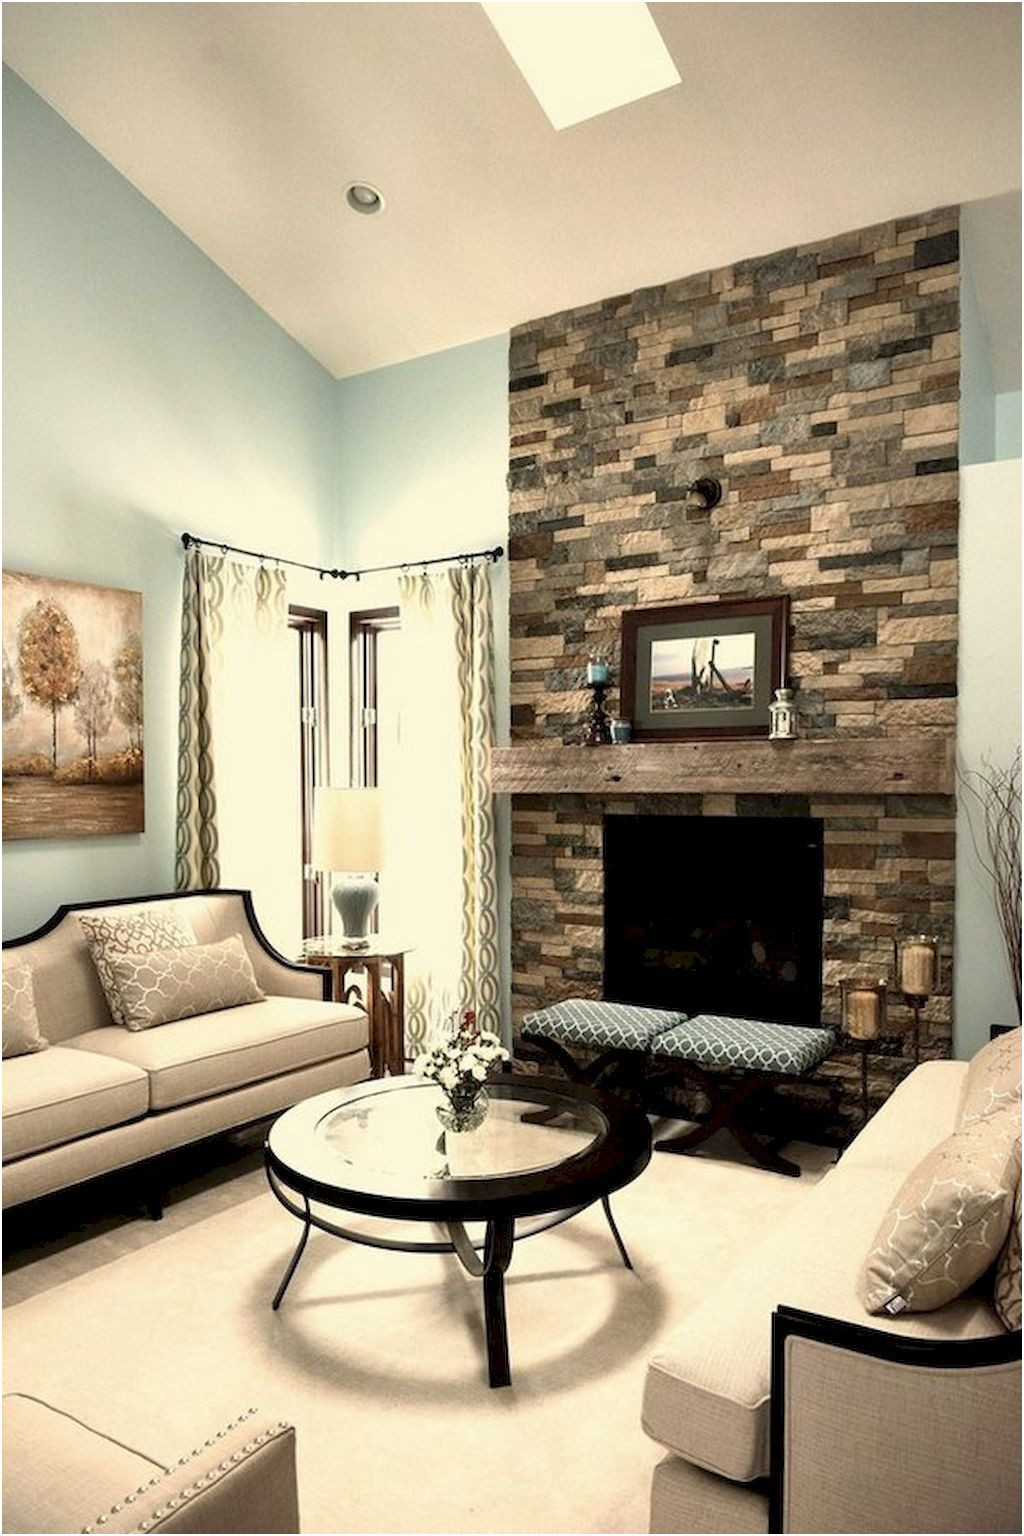 Decor Ideas for Fireplace Luxury 70 Gorgeous Apartment Fireplace Decorating Ideas